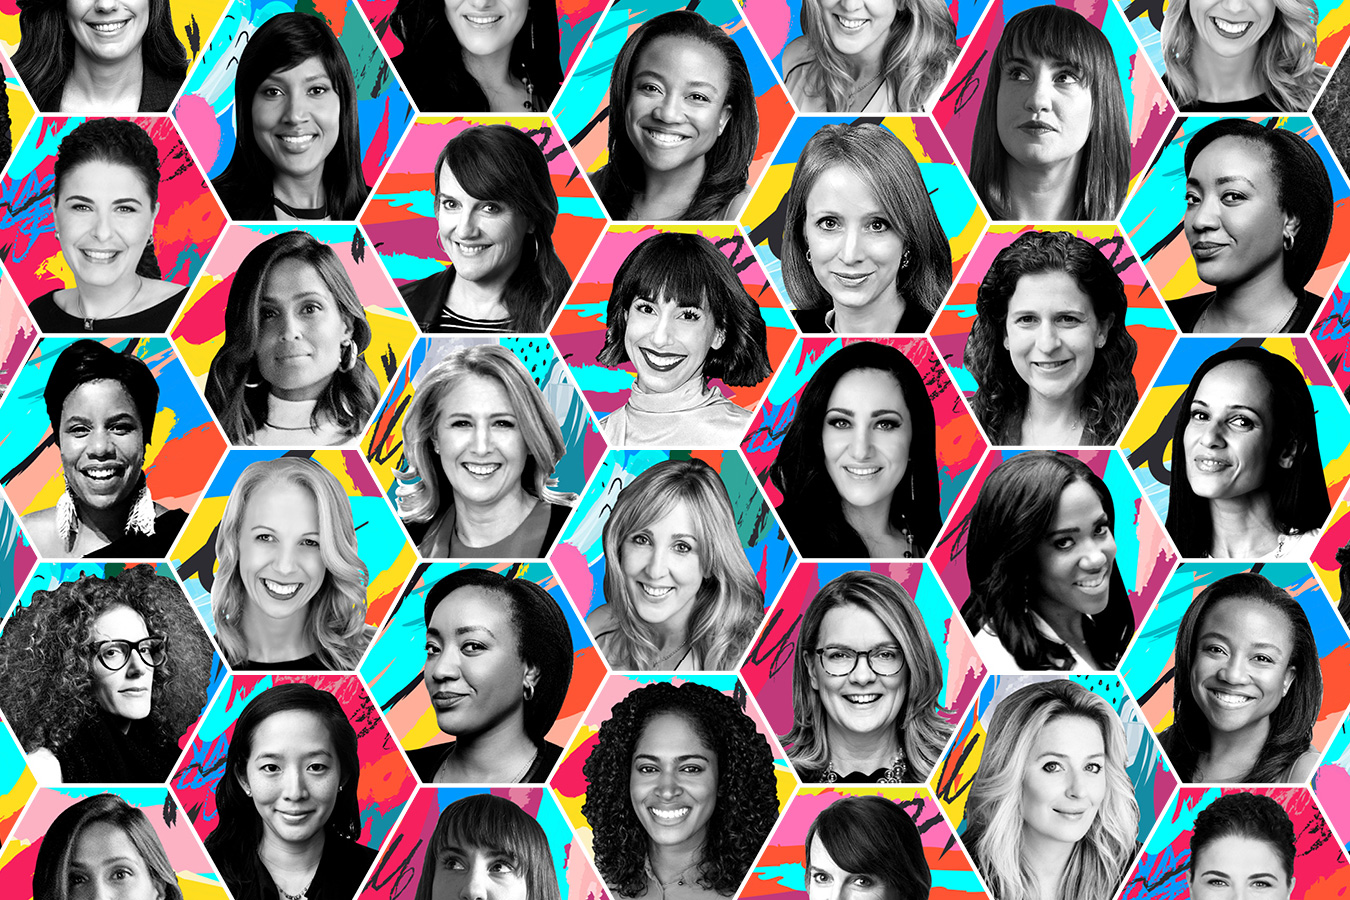 Meet the Women to Watch U.S. Class of 2019